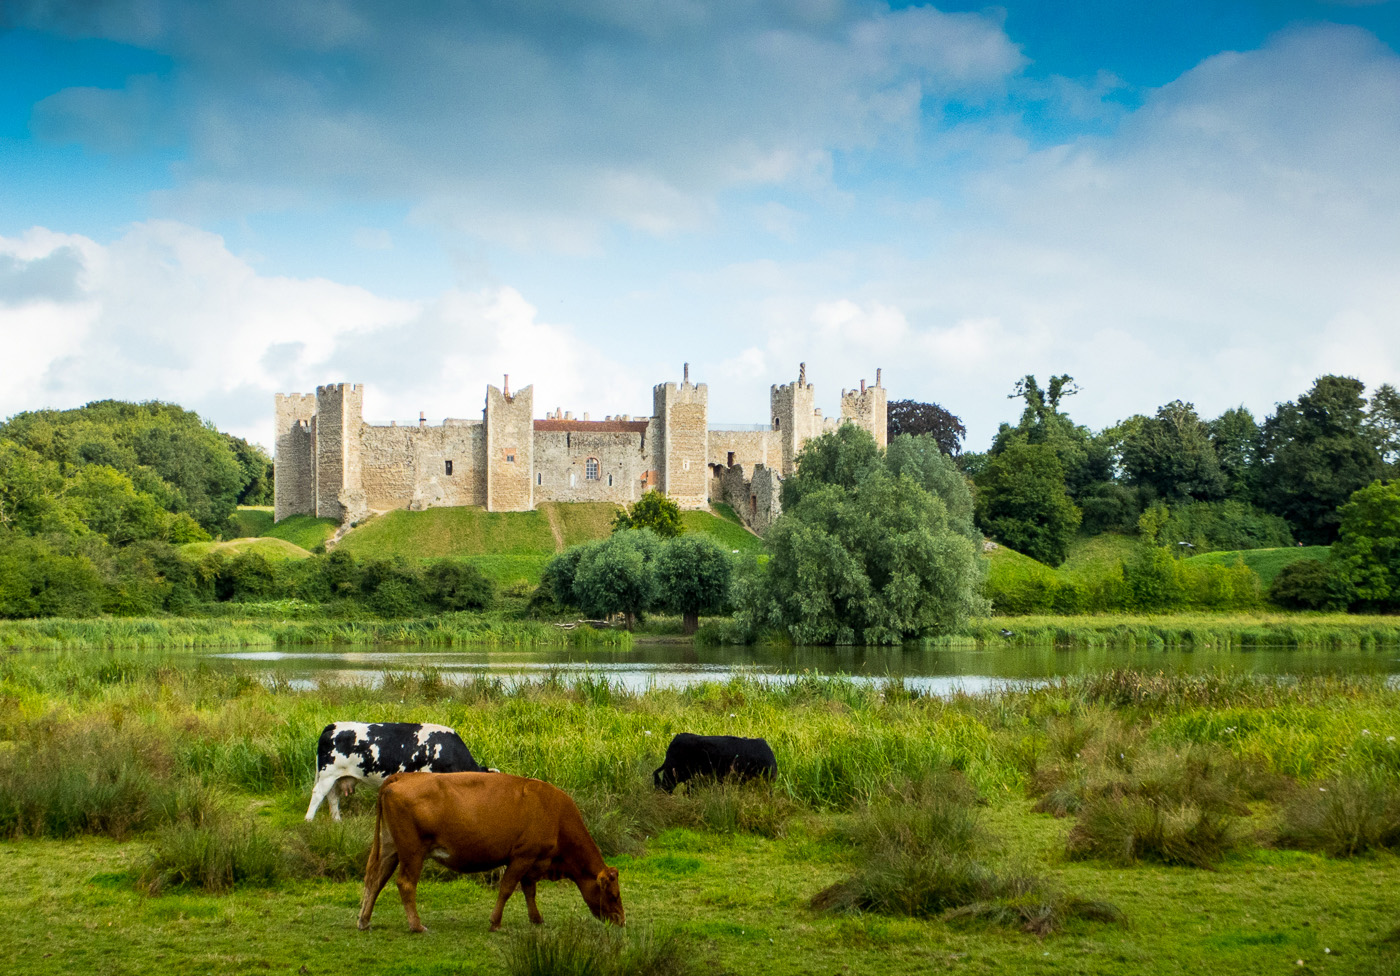 Castle and Cows